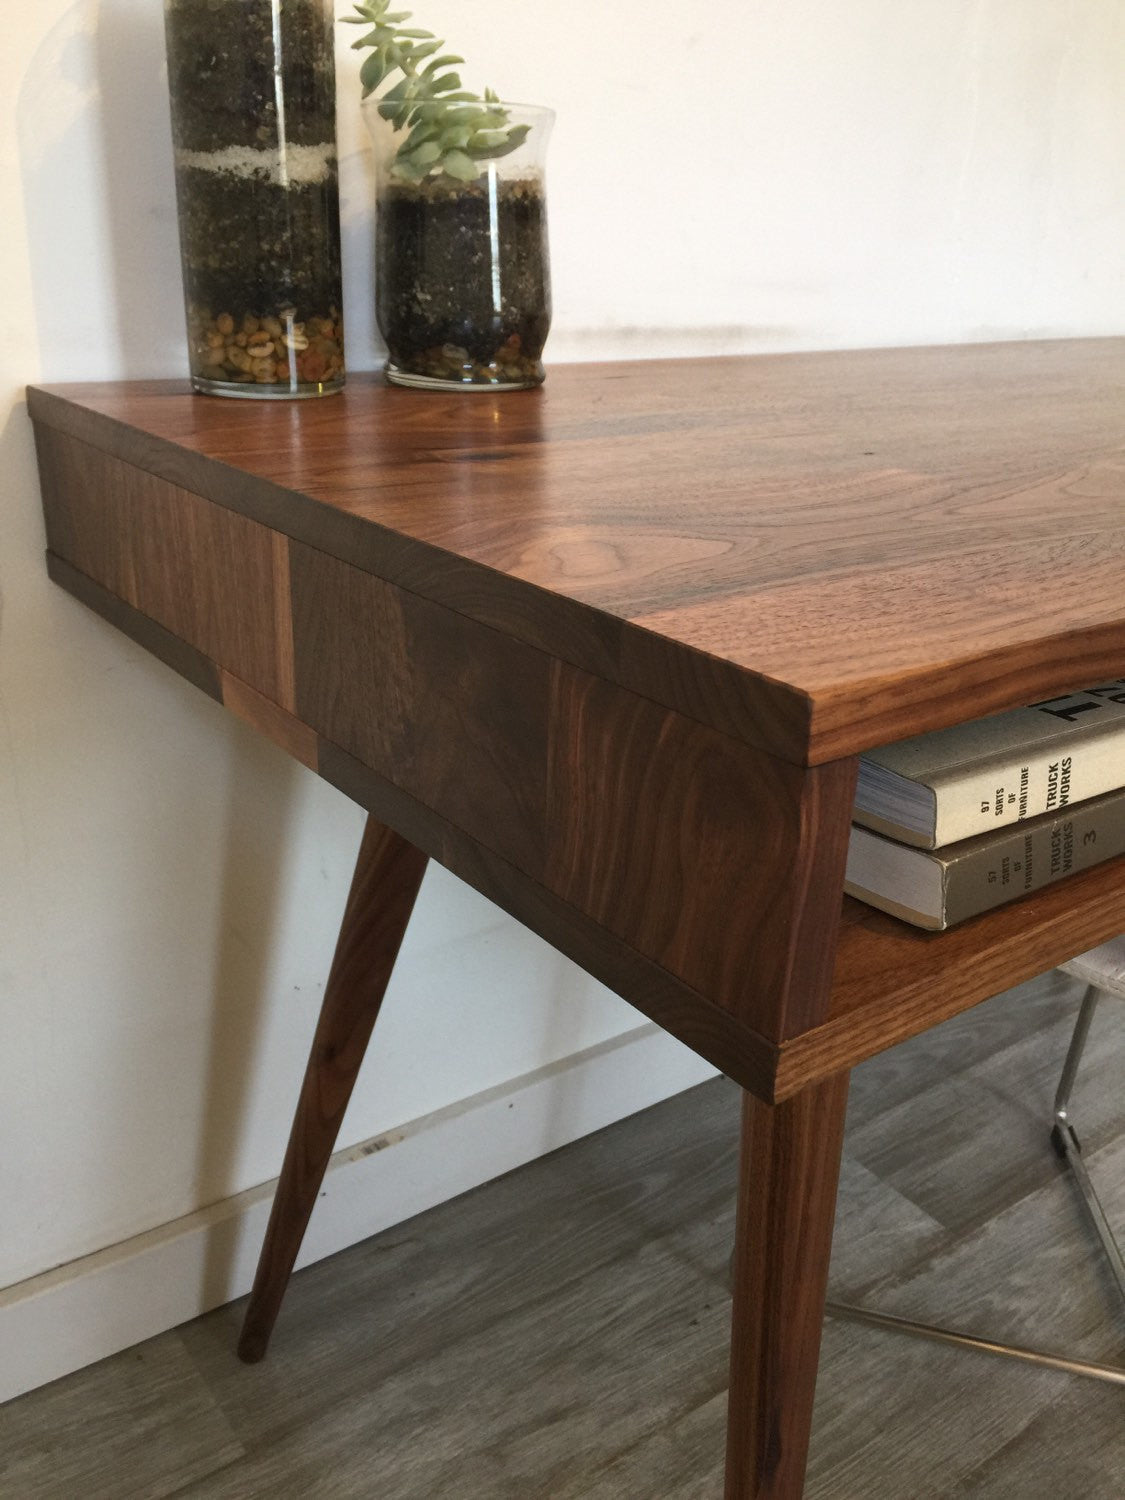 Open Mid Century Modern Desk - JeremiahCollection - 4